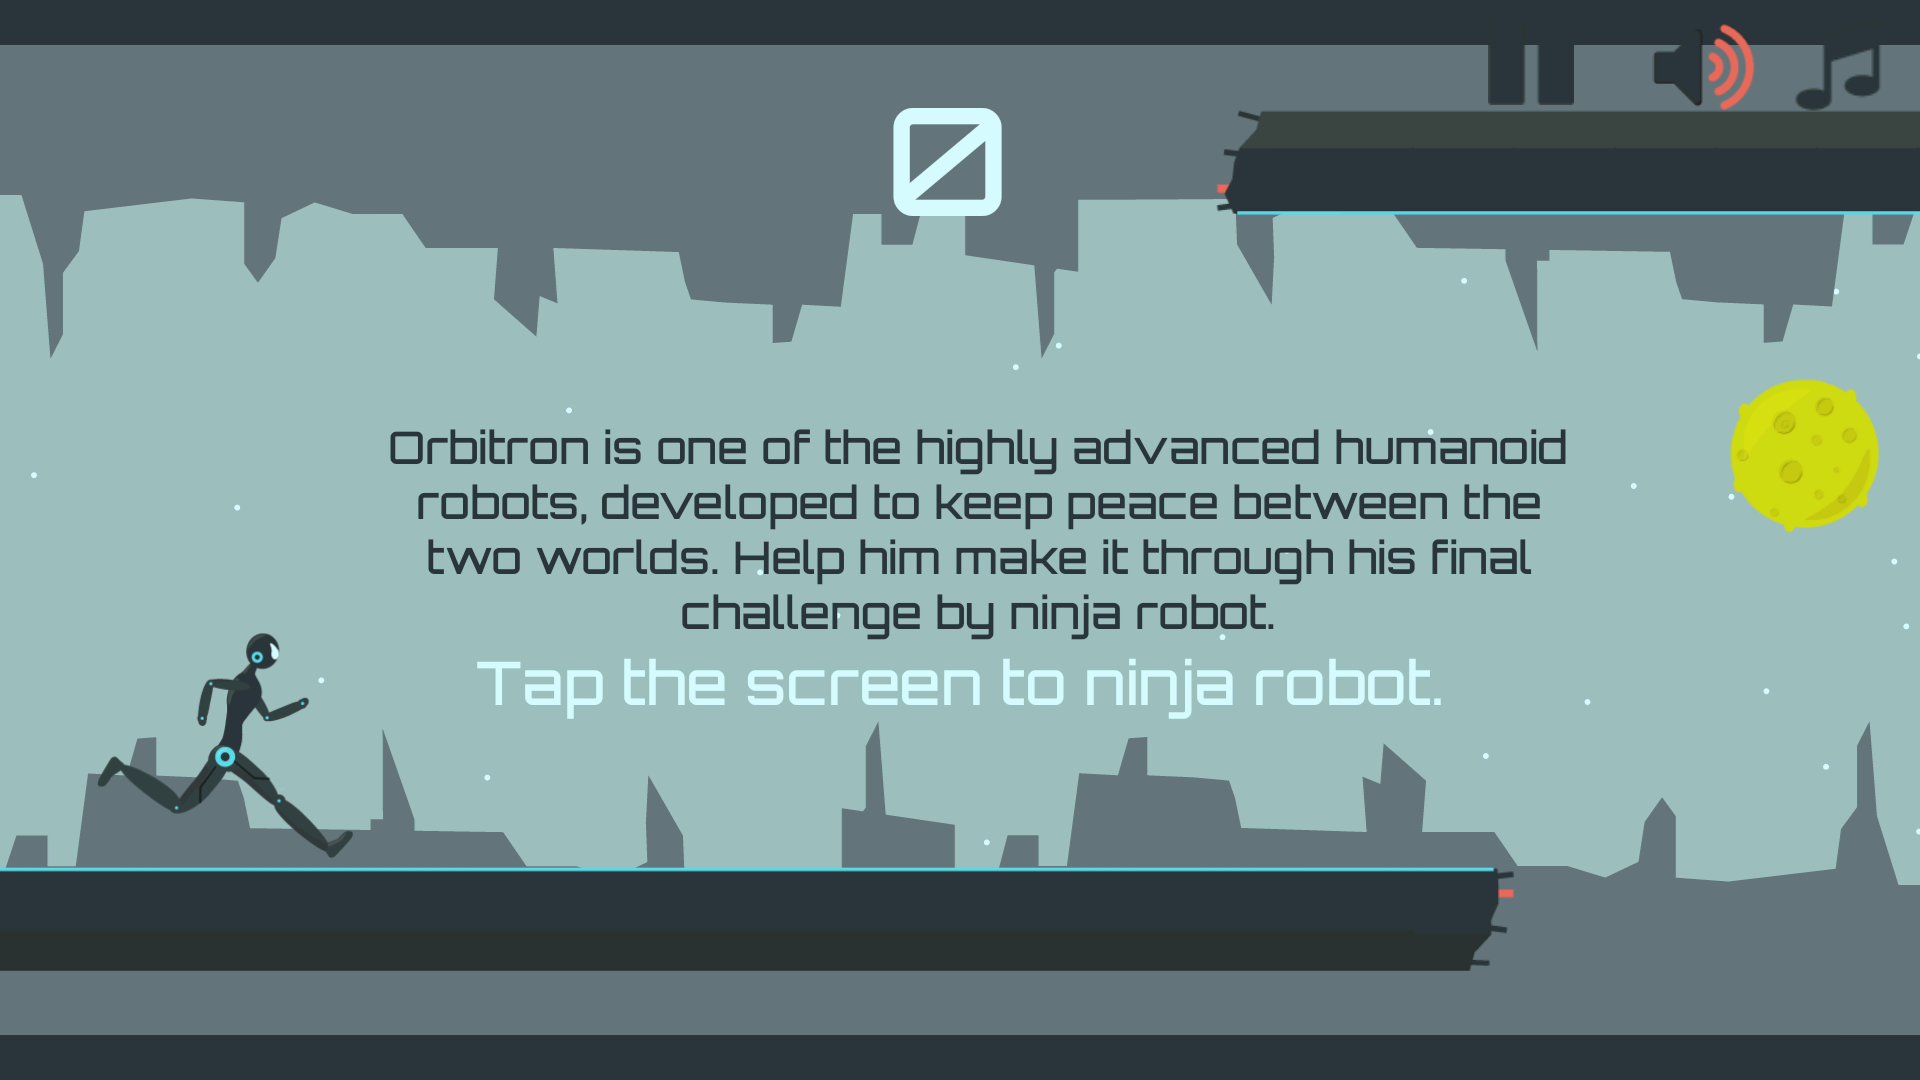 Amazon.com: ninja robot: Appstore for Android